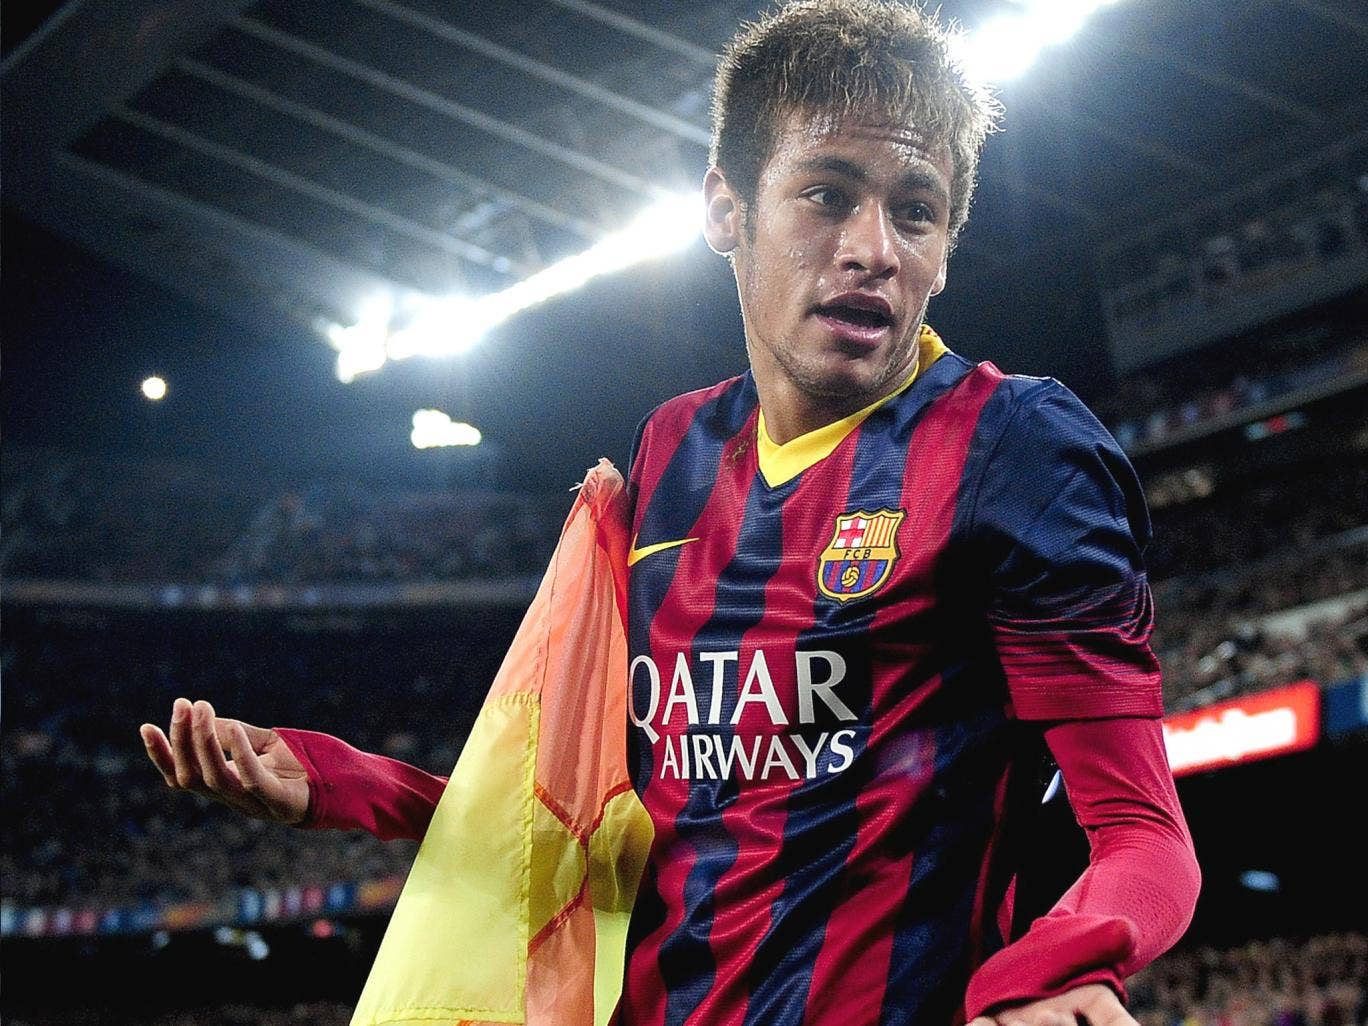 Neymar's fee was originally quoted as €57m but a court has heard the true cost to Barça was €100m